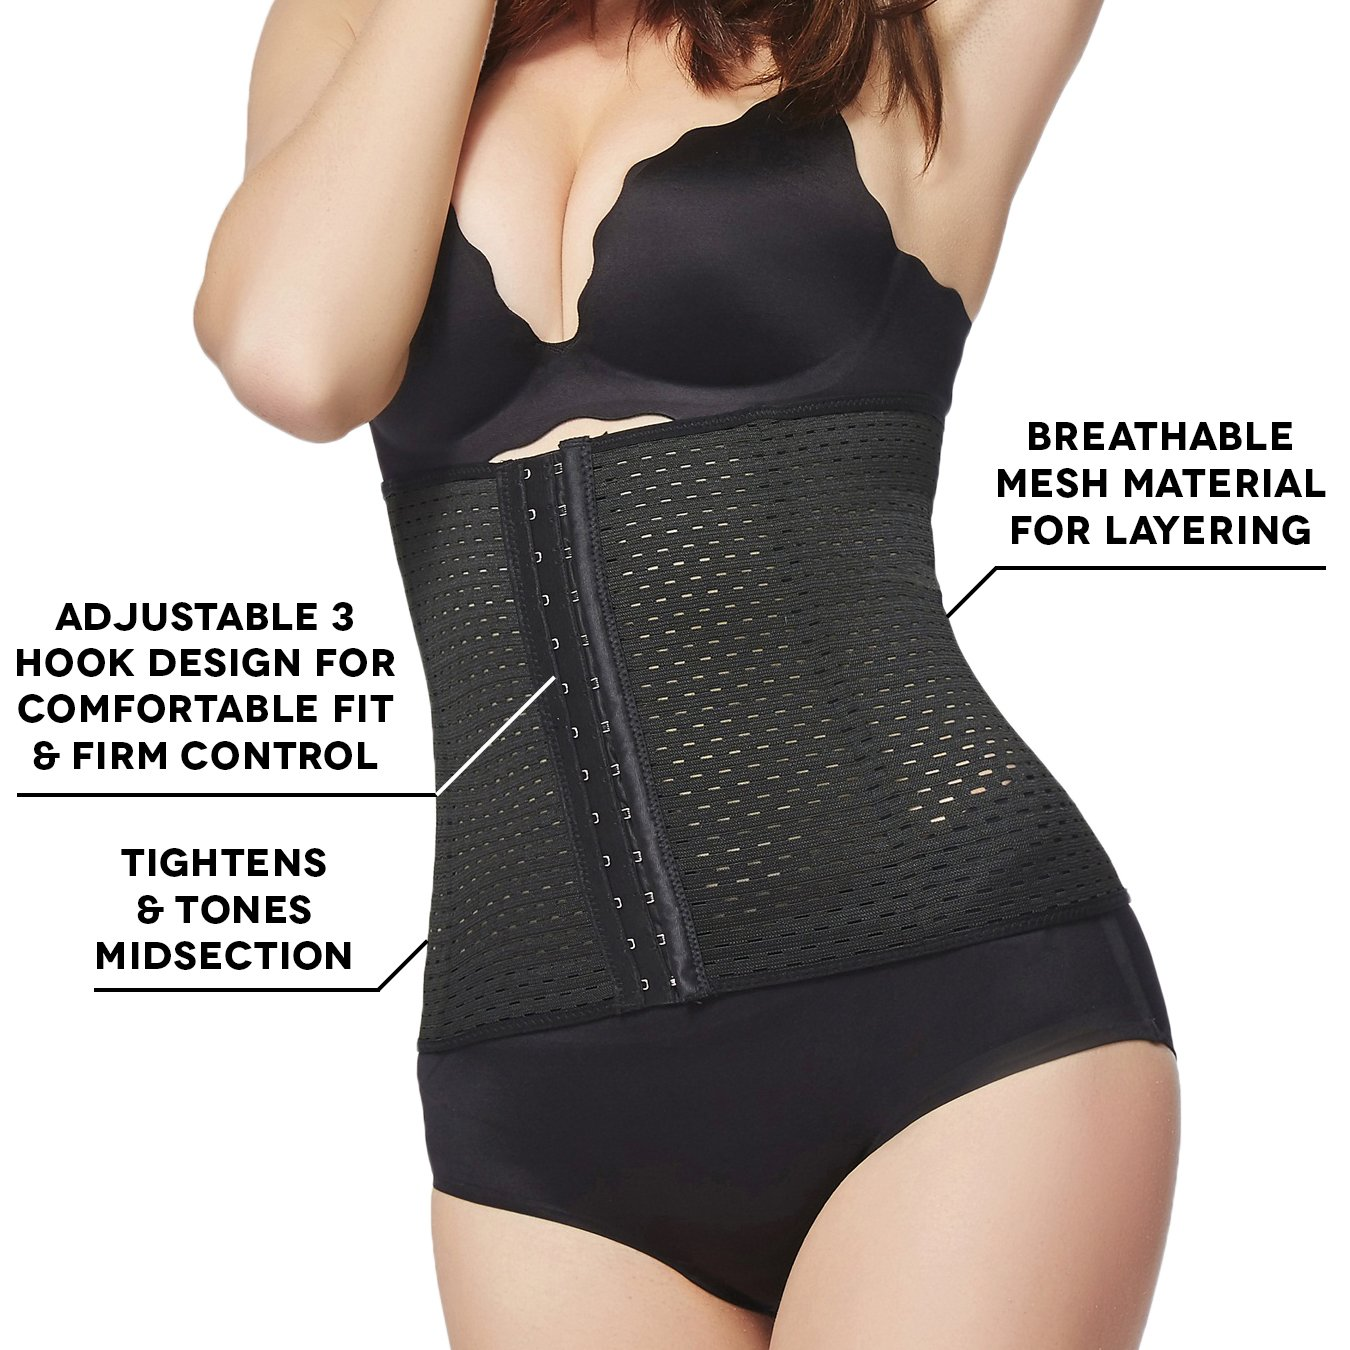 e990be38f7 Amazon.com  Robert Matthew Haute Womens Shapewear Underbust High Waist  Cincher Body Shaper  Clothing